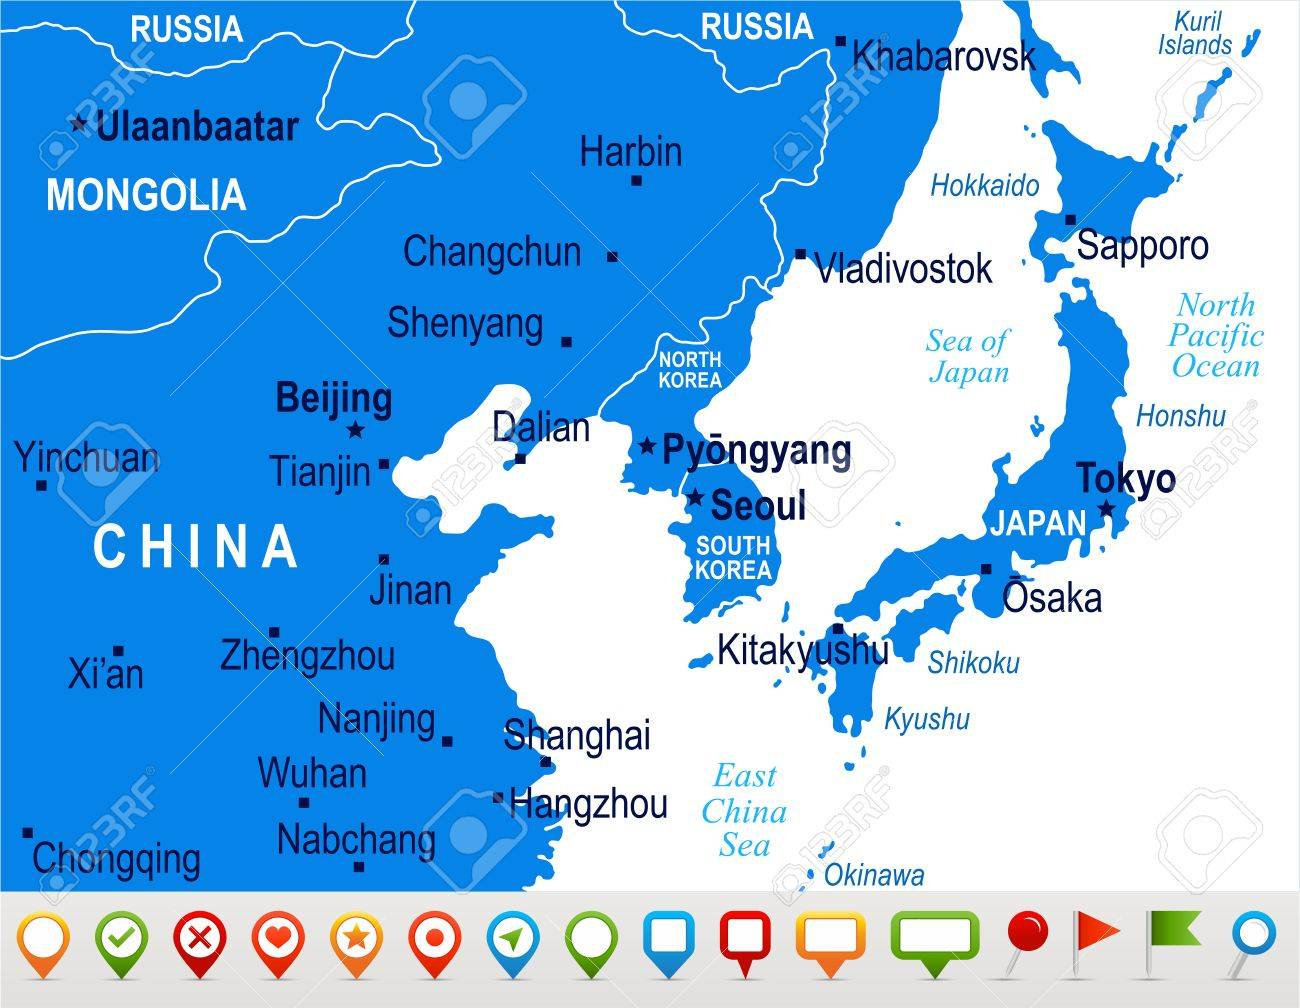 North Korea South Korea Japan China Russia Mongolia Map Detailed